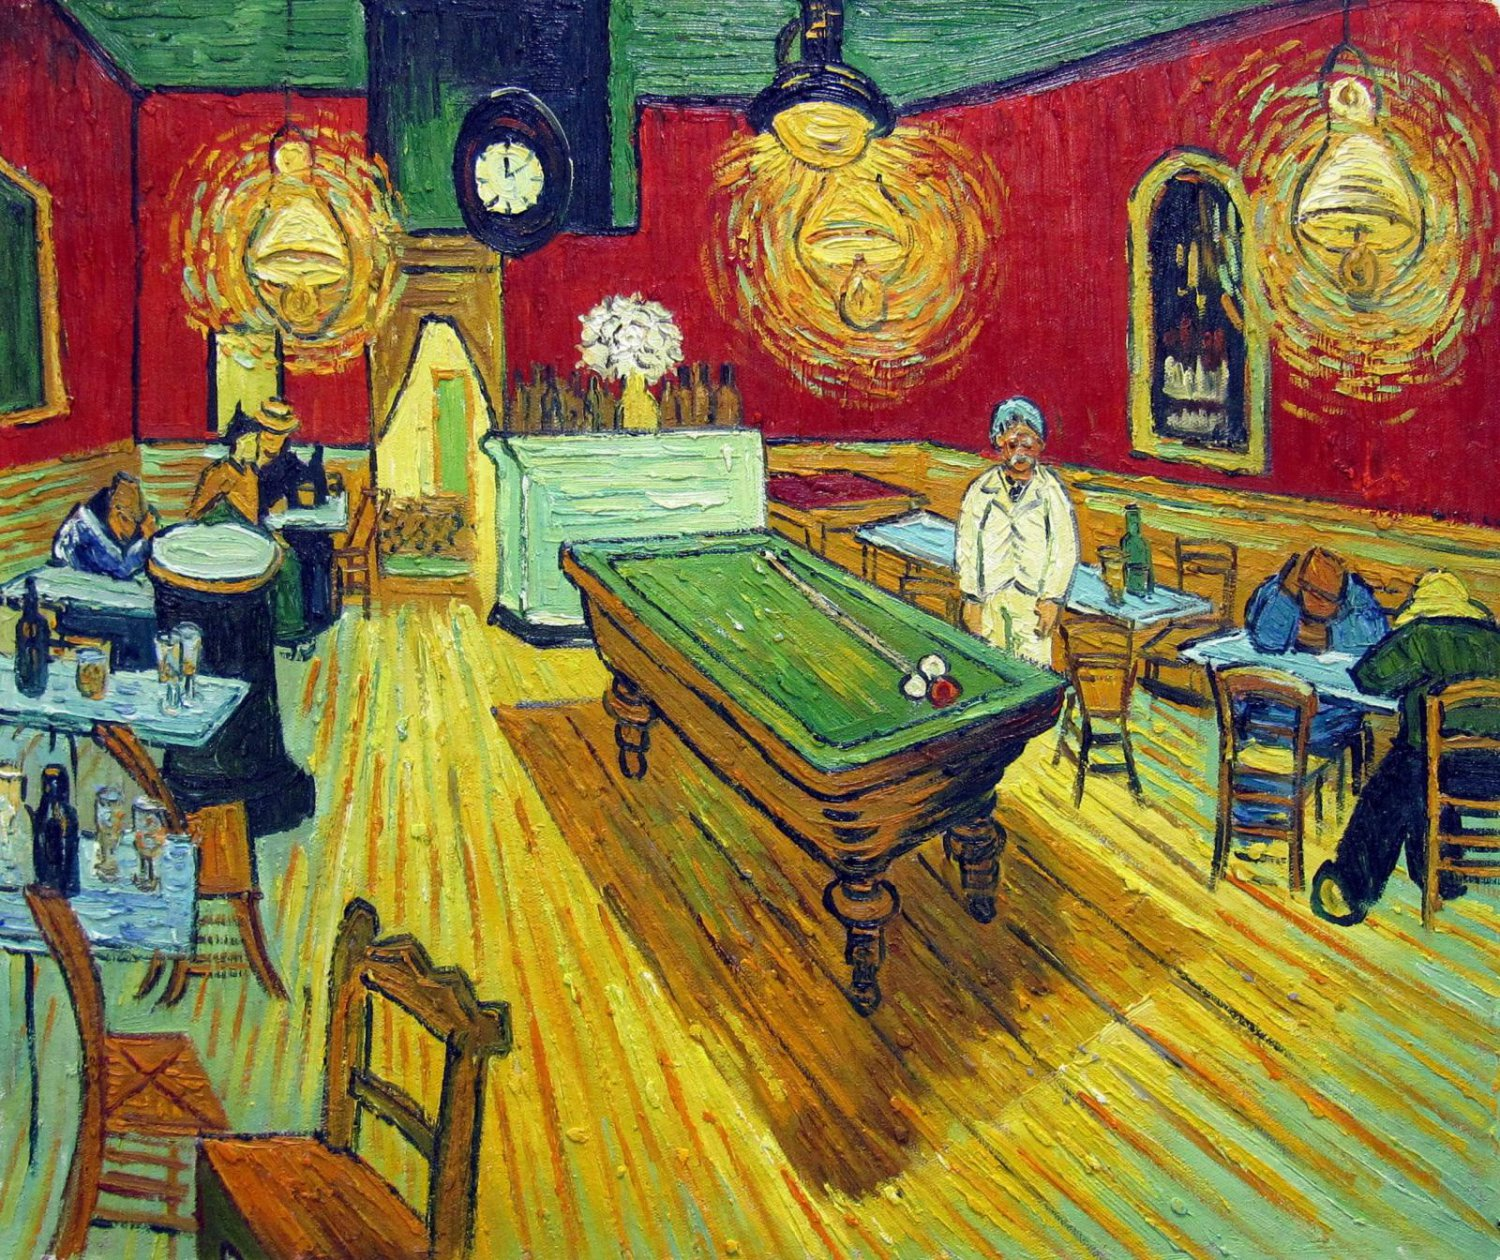 Rep. Vencent Van Gogh 20x24 in. stretched Oil Painting Canvas Art Wall Decor modern111